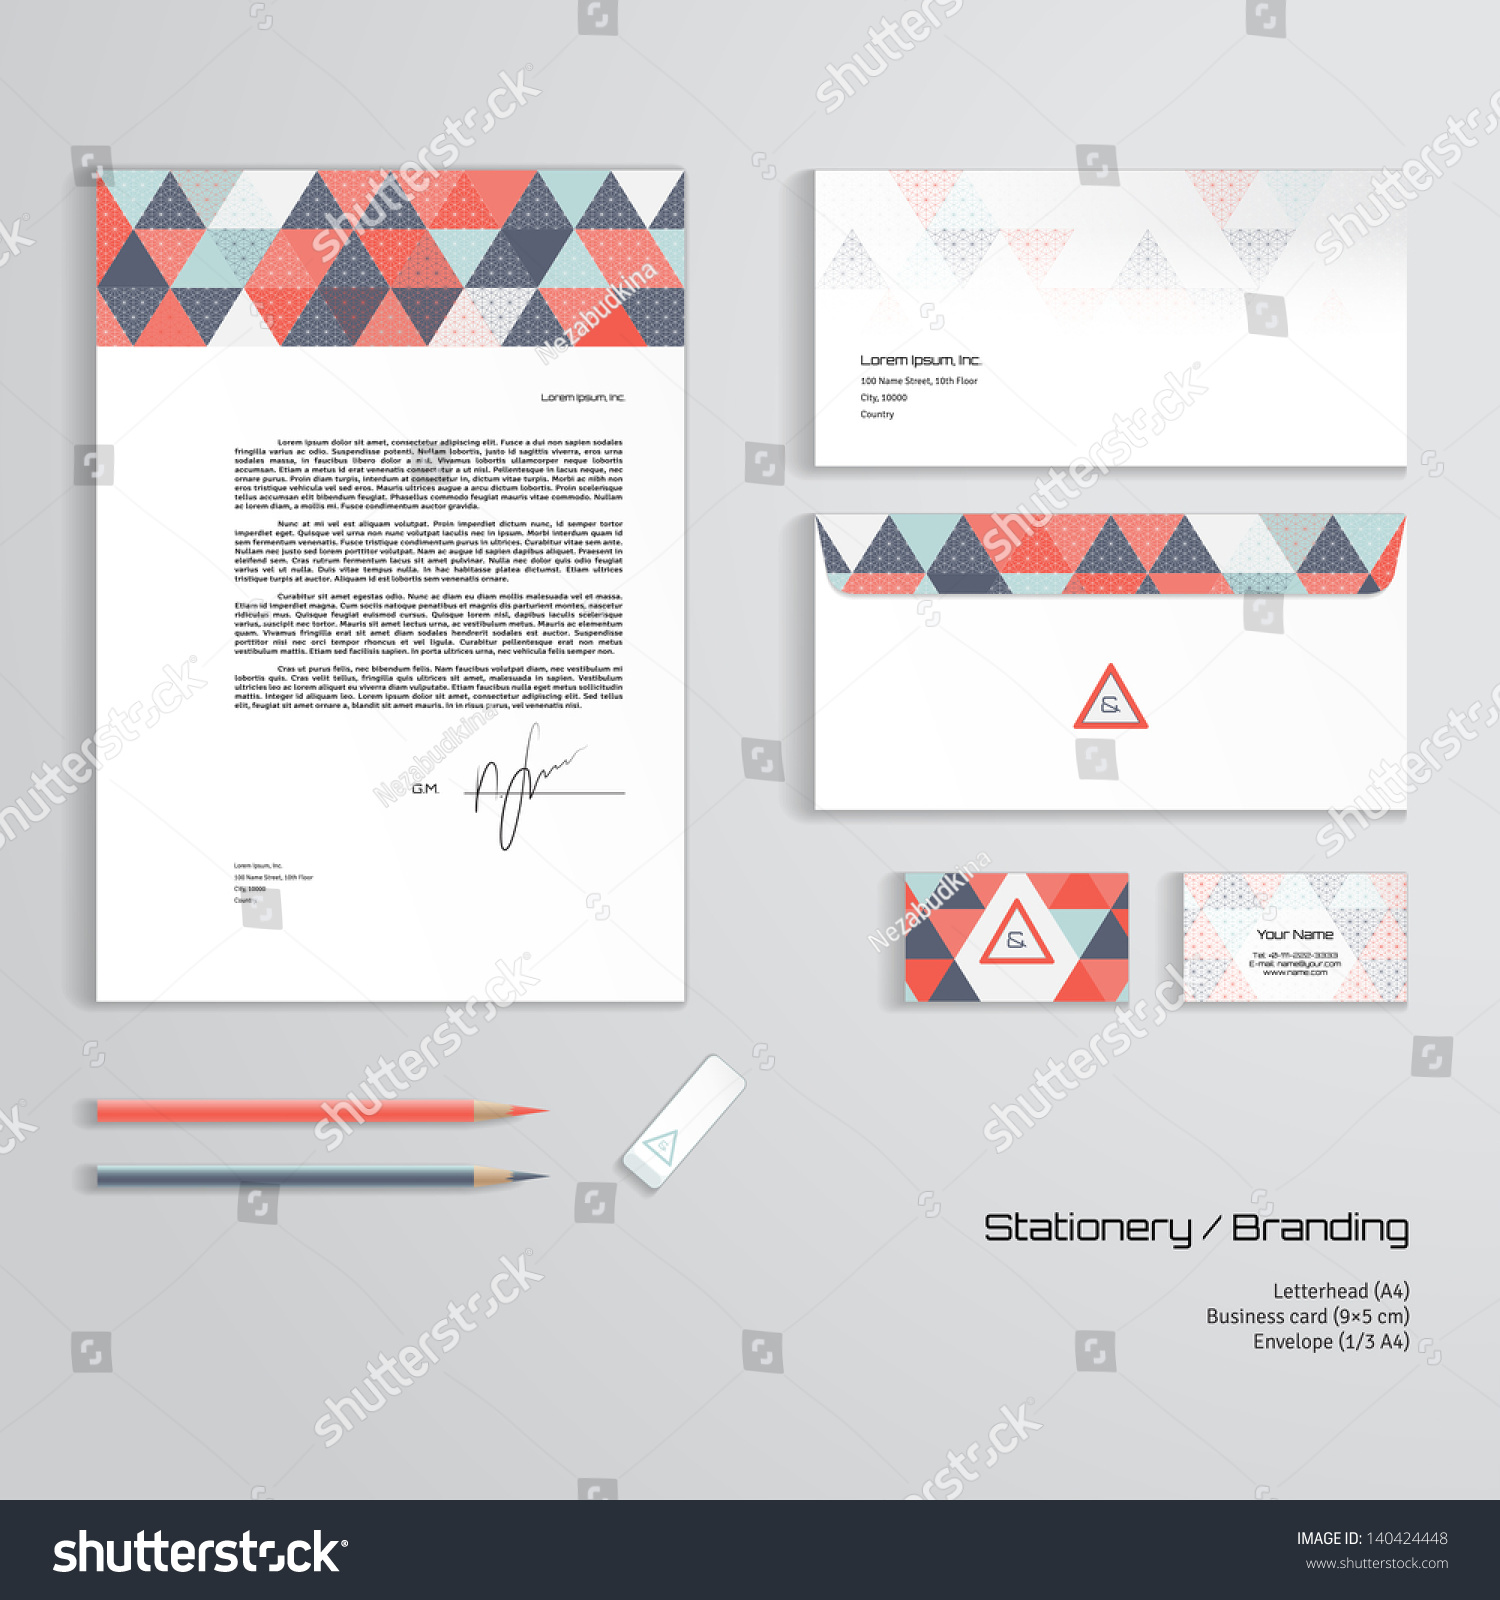 Letterhead Envelopes: Vector Corporate Identity Templates. Multicolored